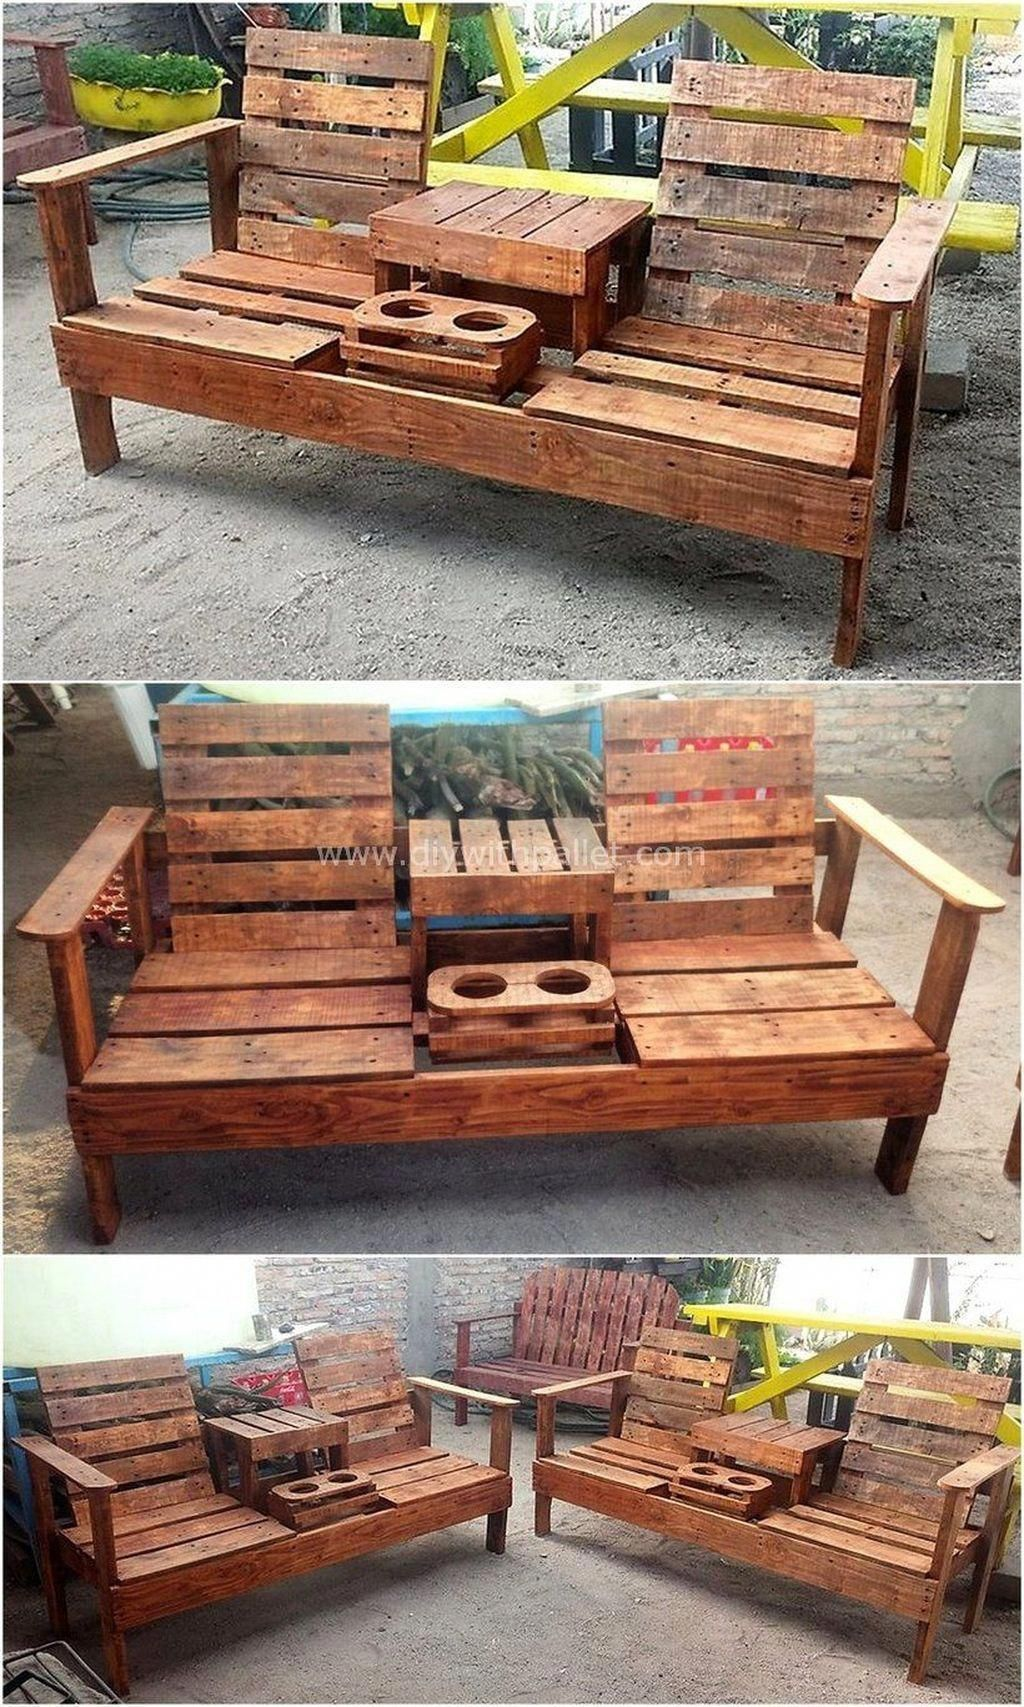 In The Past When You Thought Of A Pallet You Thought Of Bulk Shipping And Warehouses Tha Pallet Furniture Designs Diy Pallet Furniture Wooden Pallet Projects